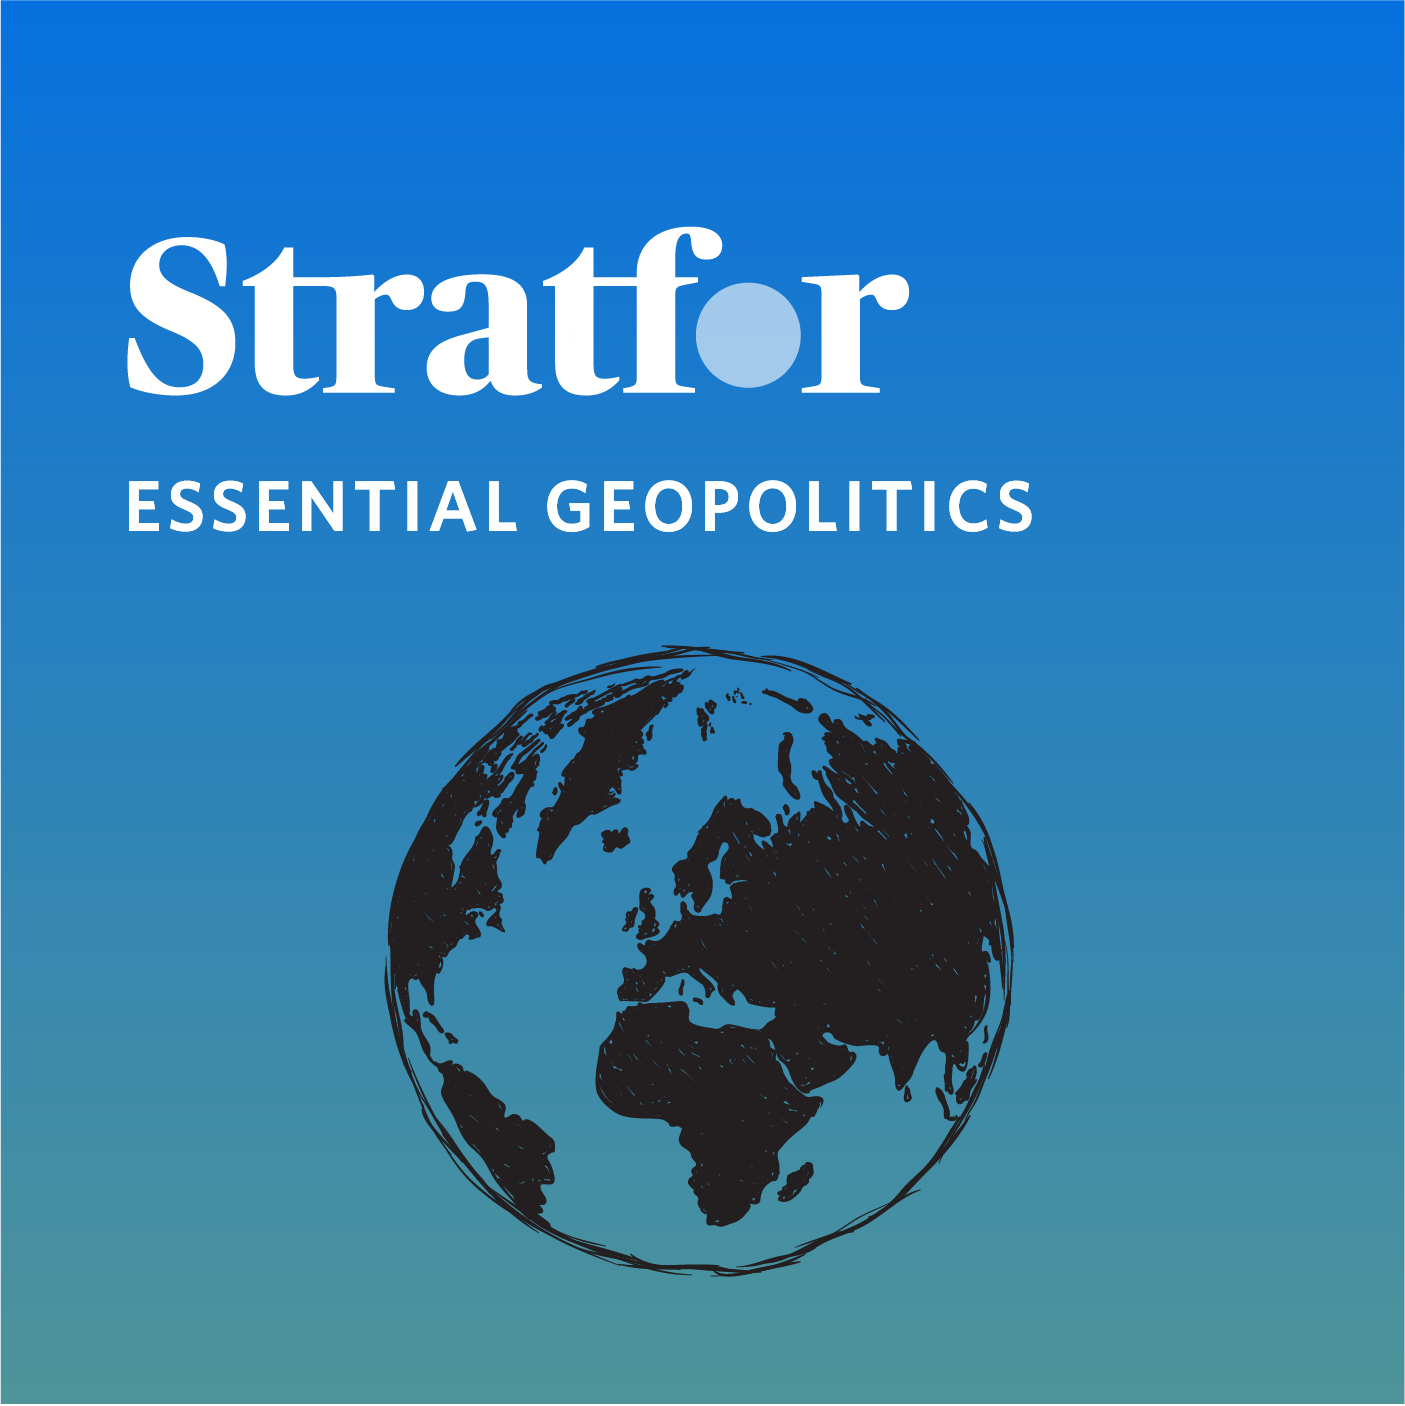 Essential Geopolitics: China's Five Year Plan, the 2021 Version